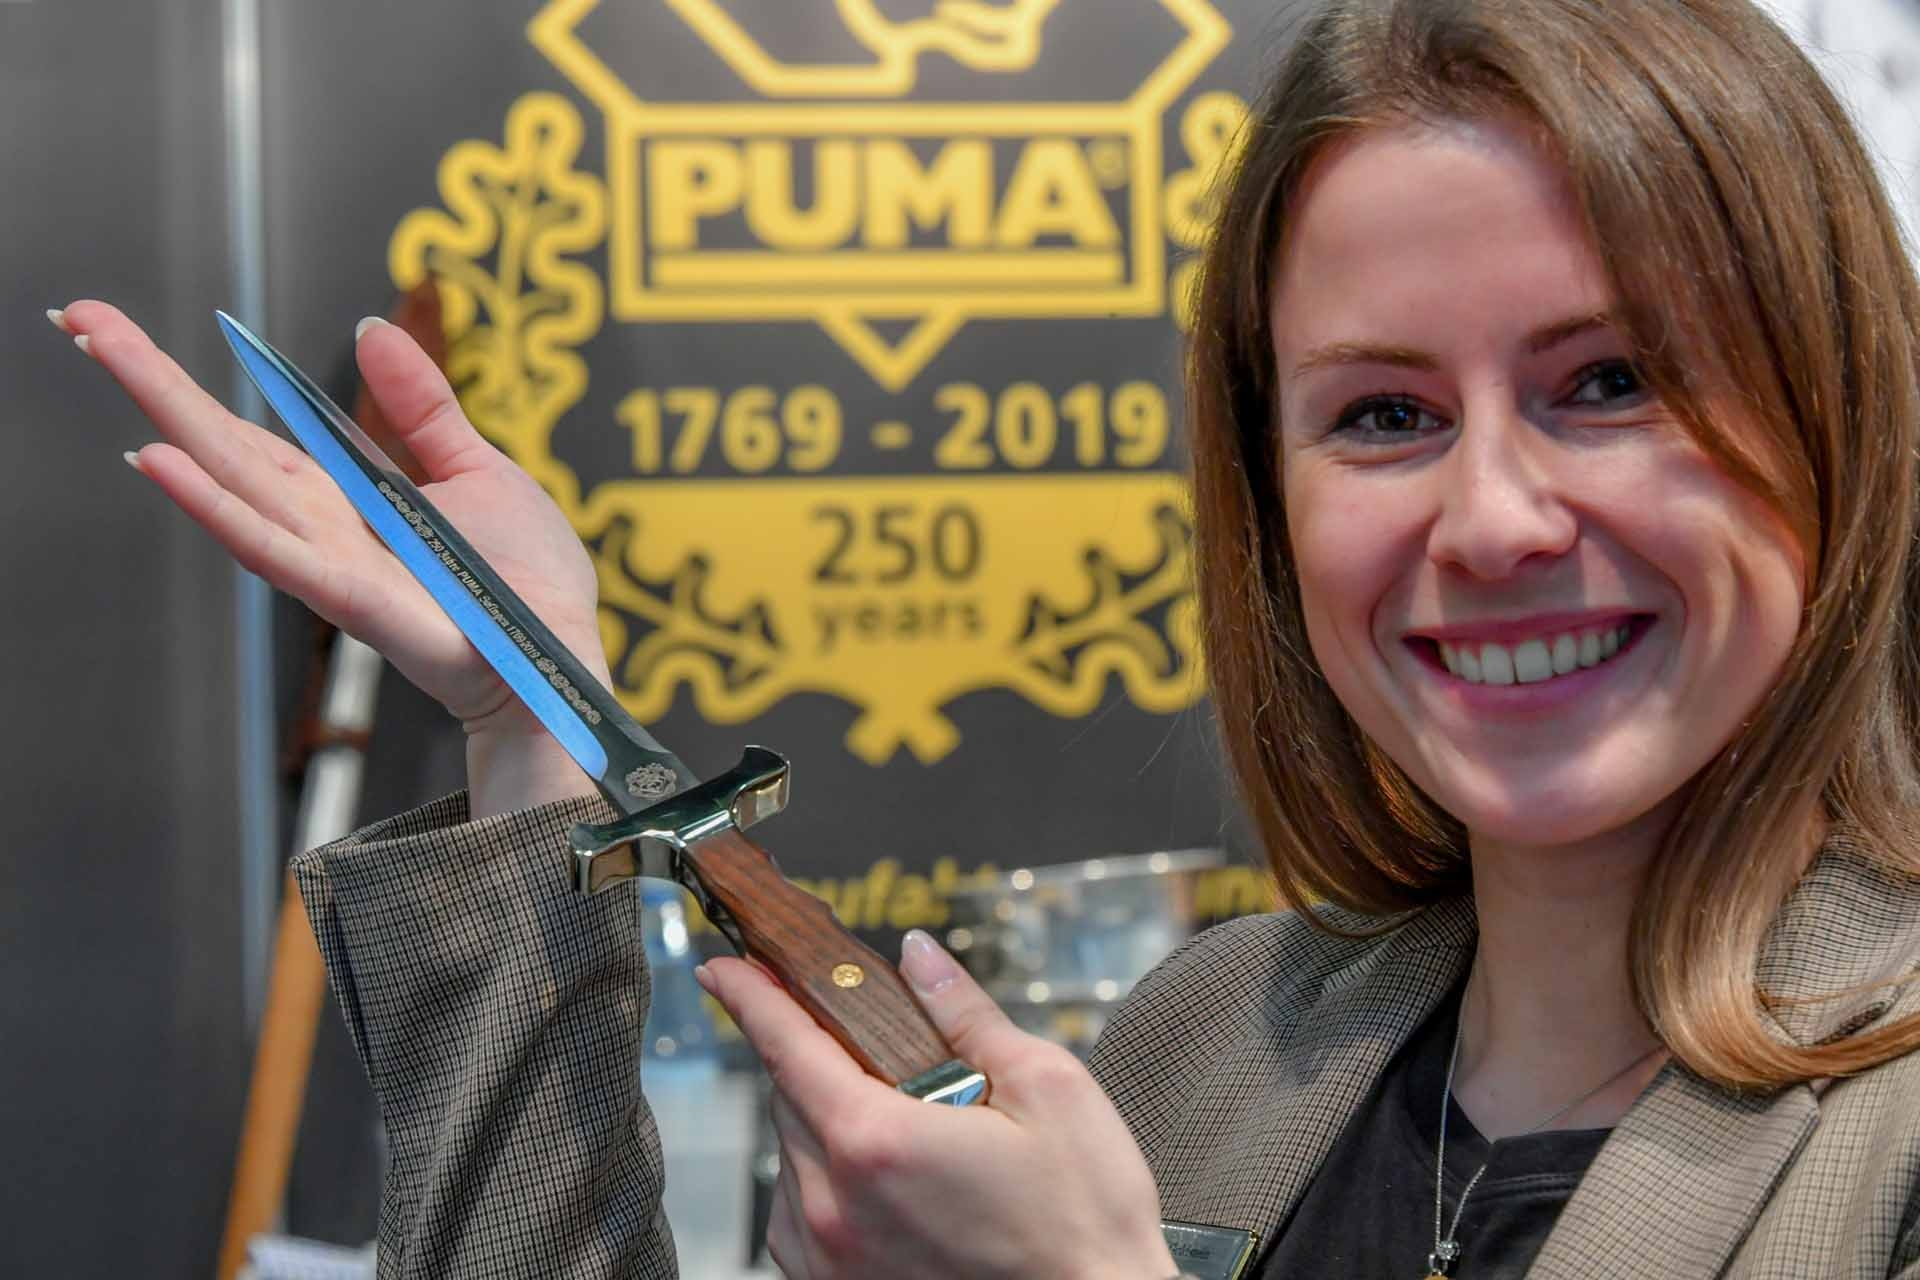 Puma knife of the year